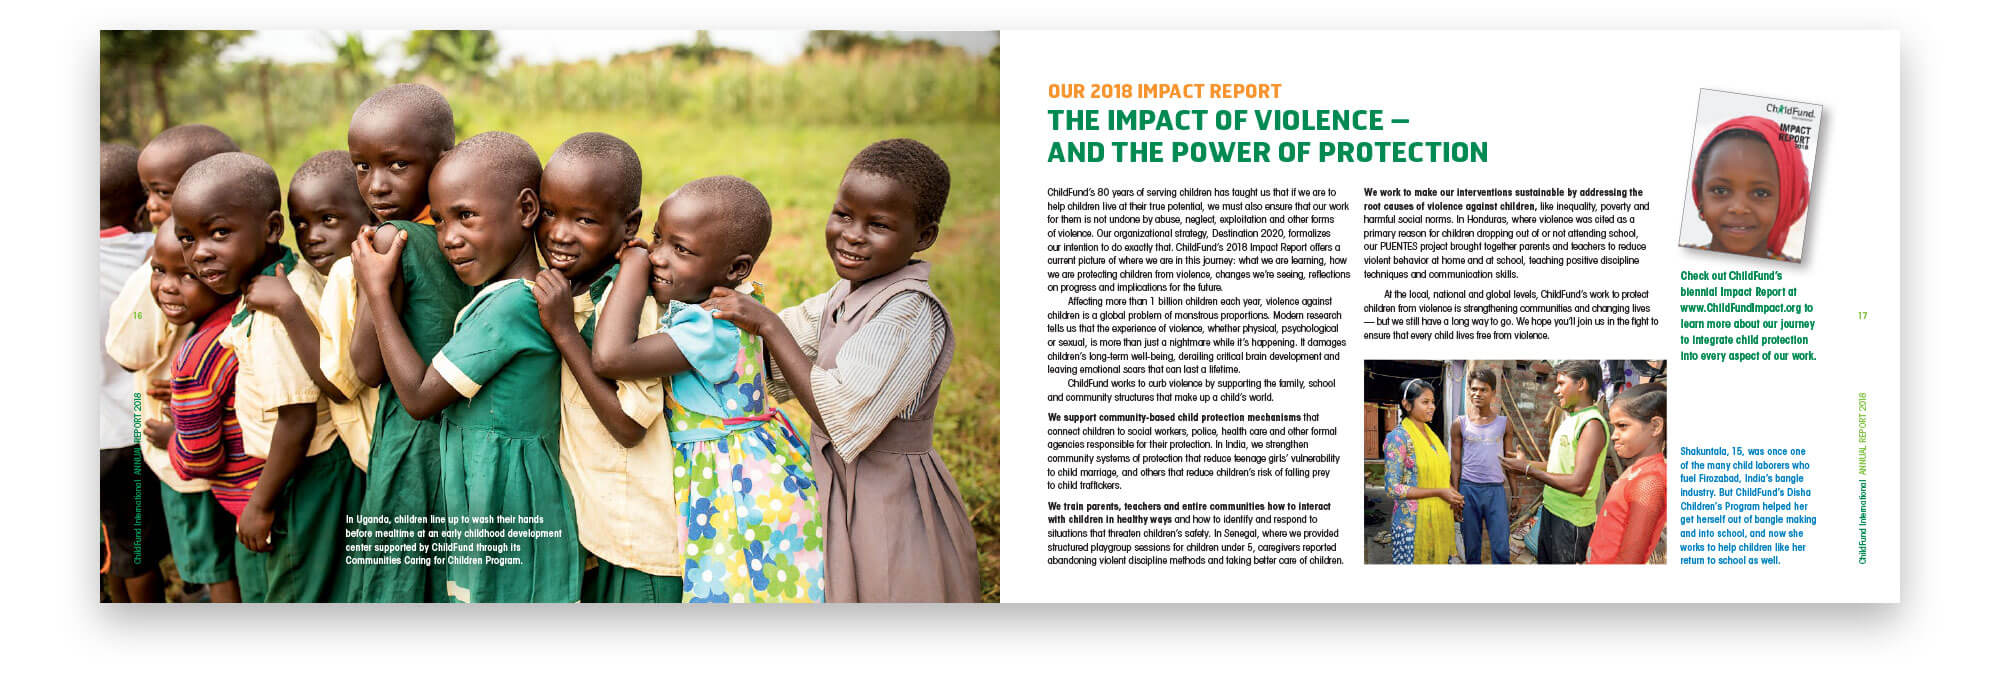 Impact of Violence spread